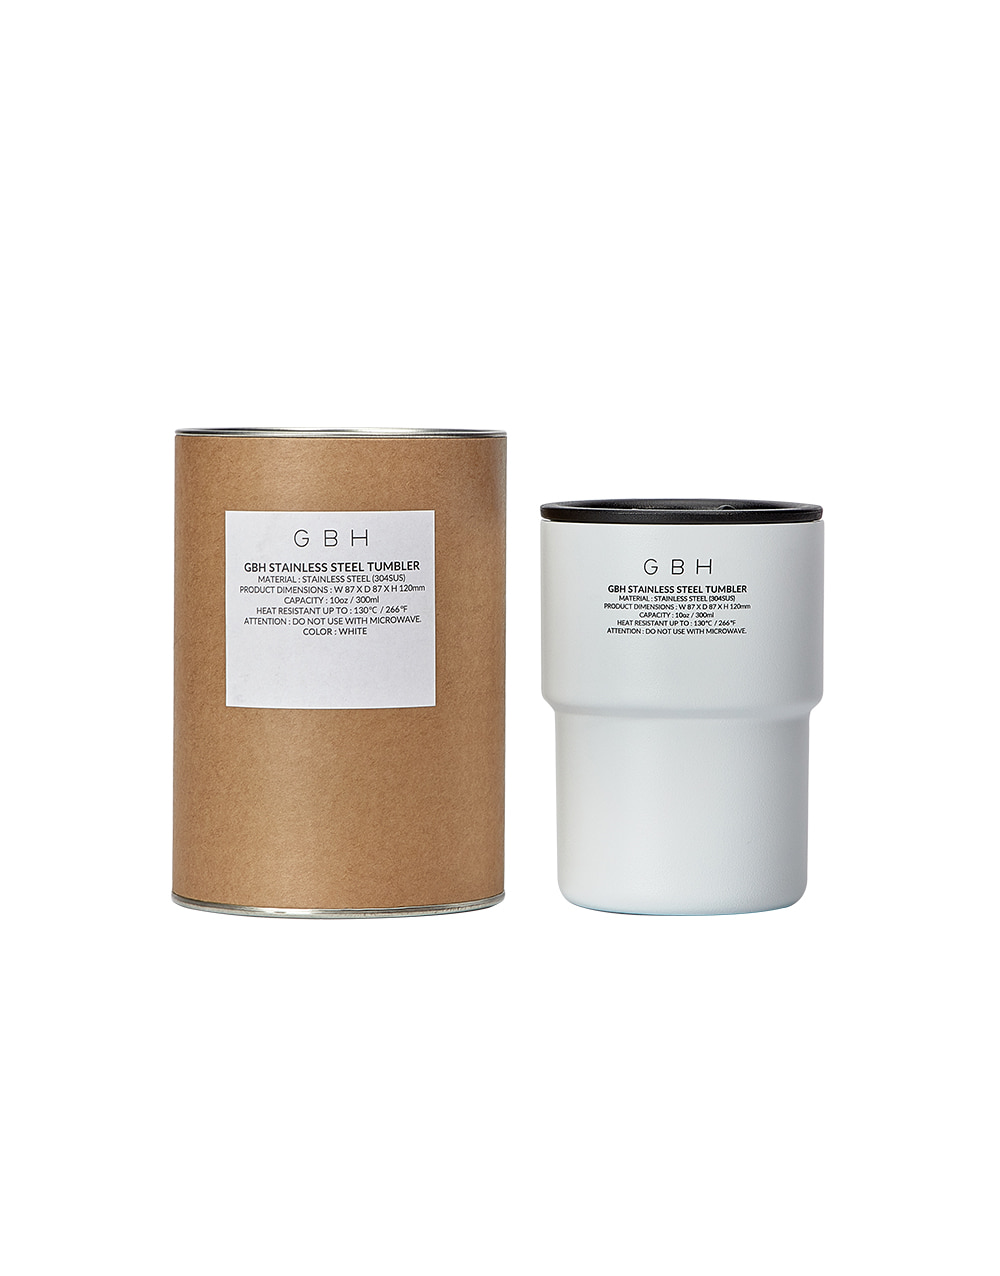 GBH HOME STAINLESS STEEL TUMBLER WHITE + TUMBLER POUCH